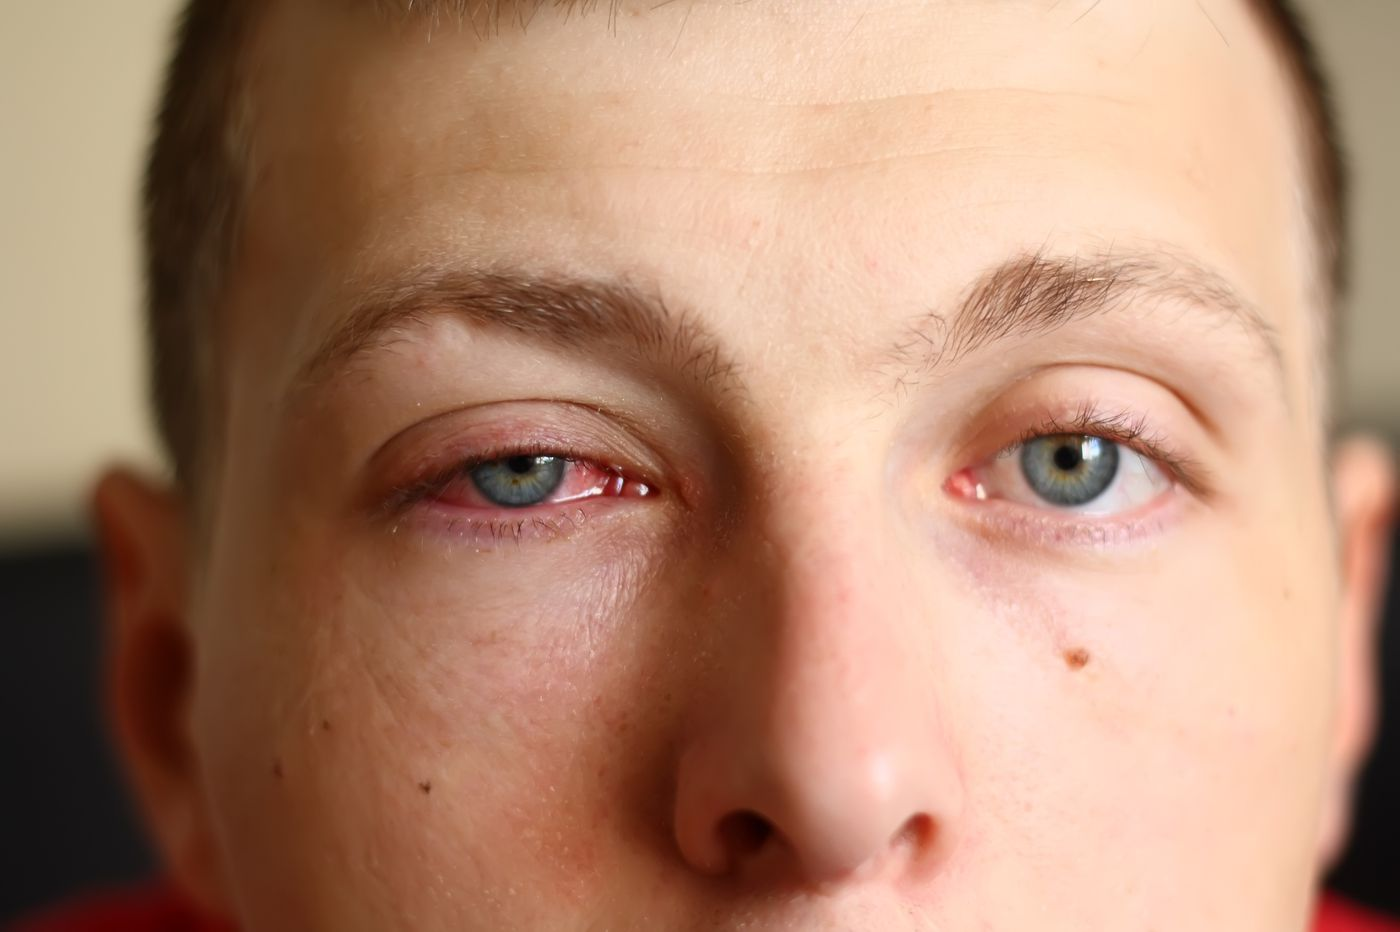 Pink eye a possible early warning sign of coronavirus, eye doctors report